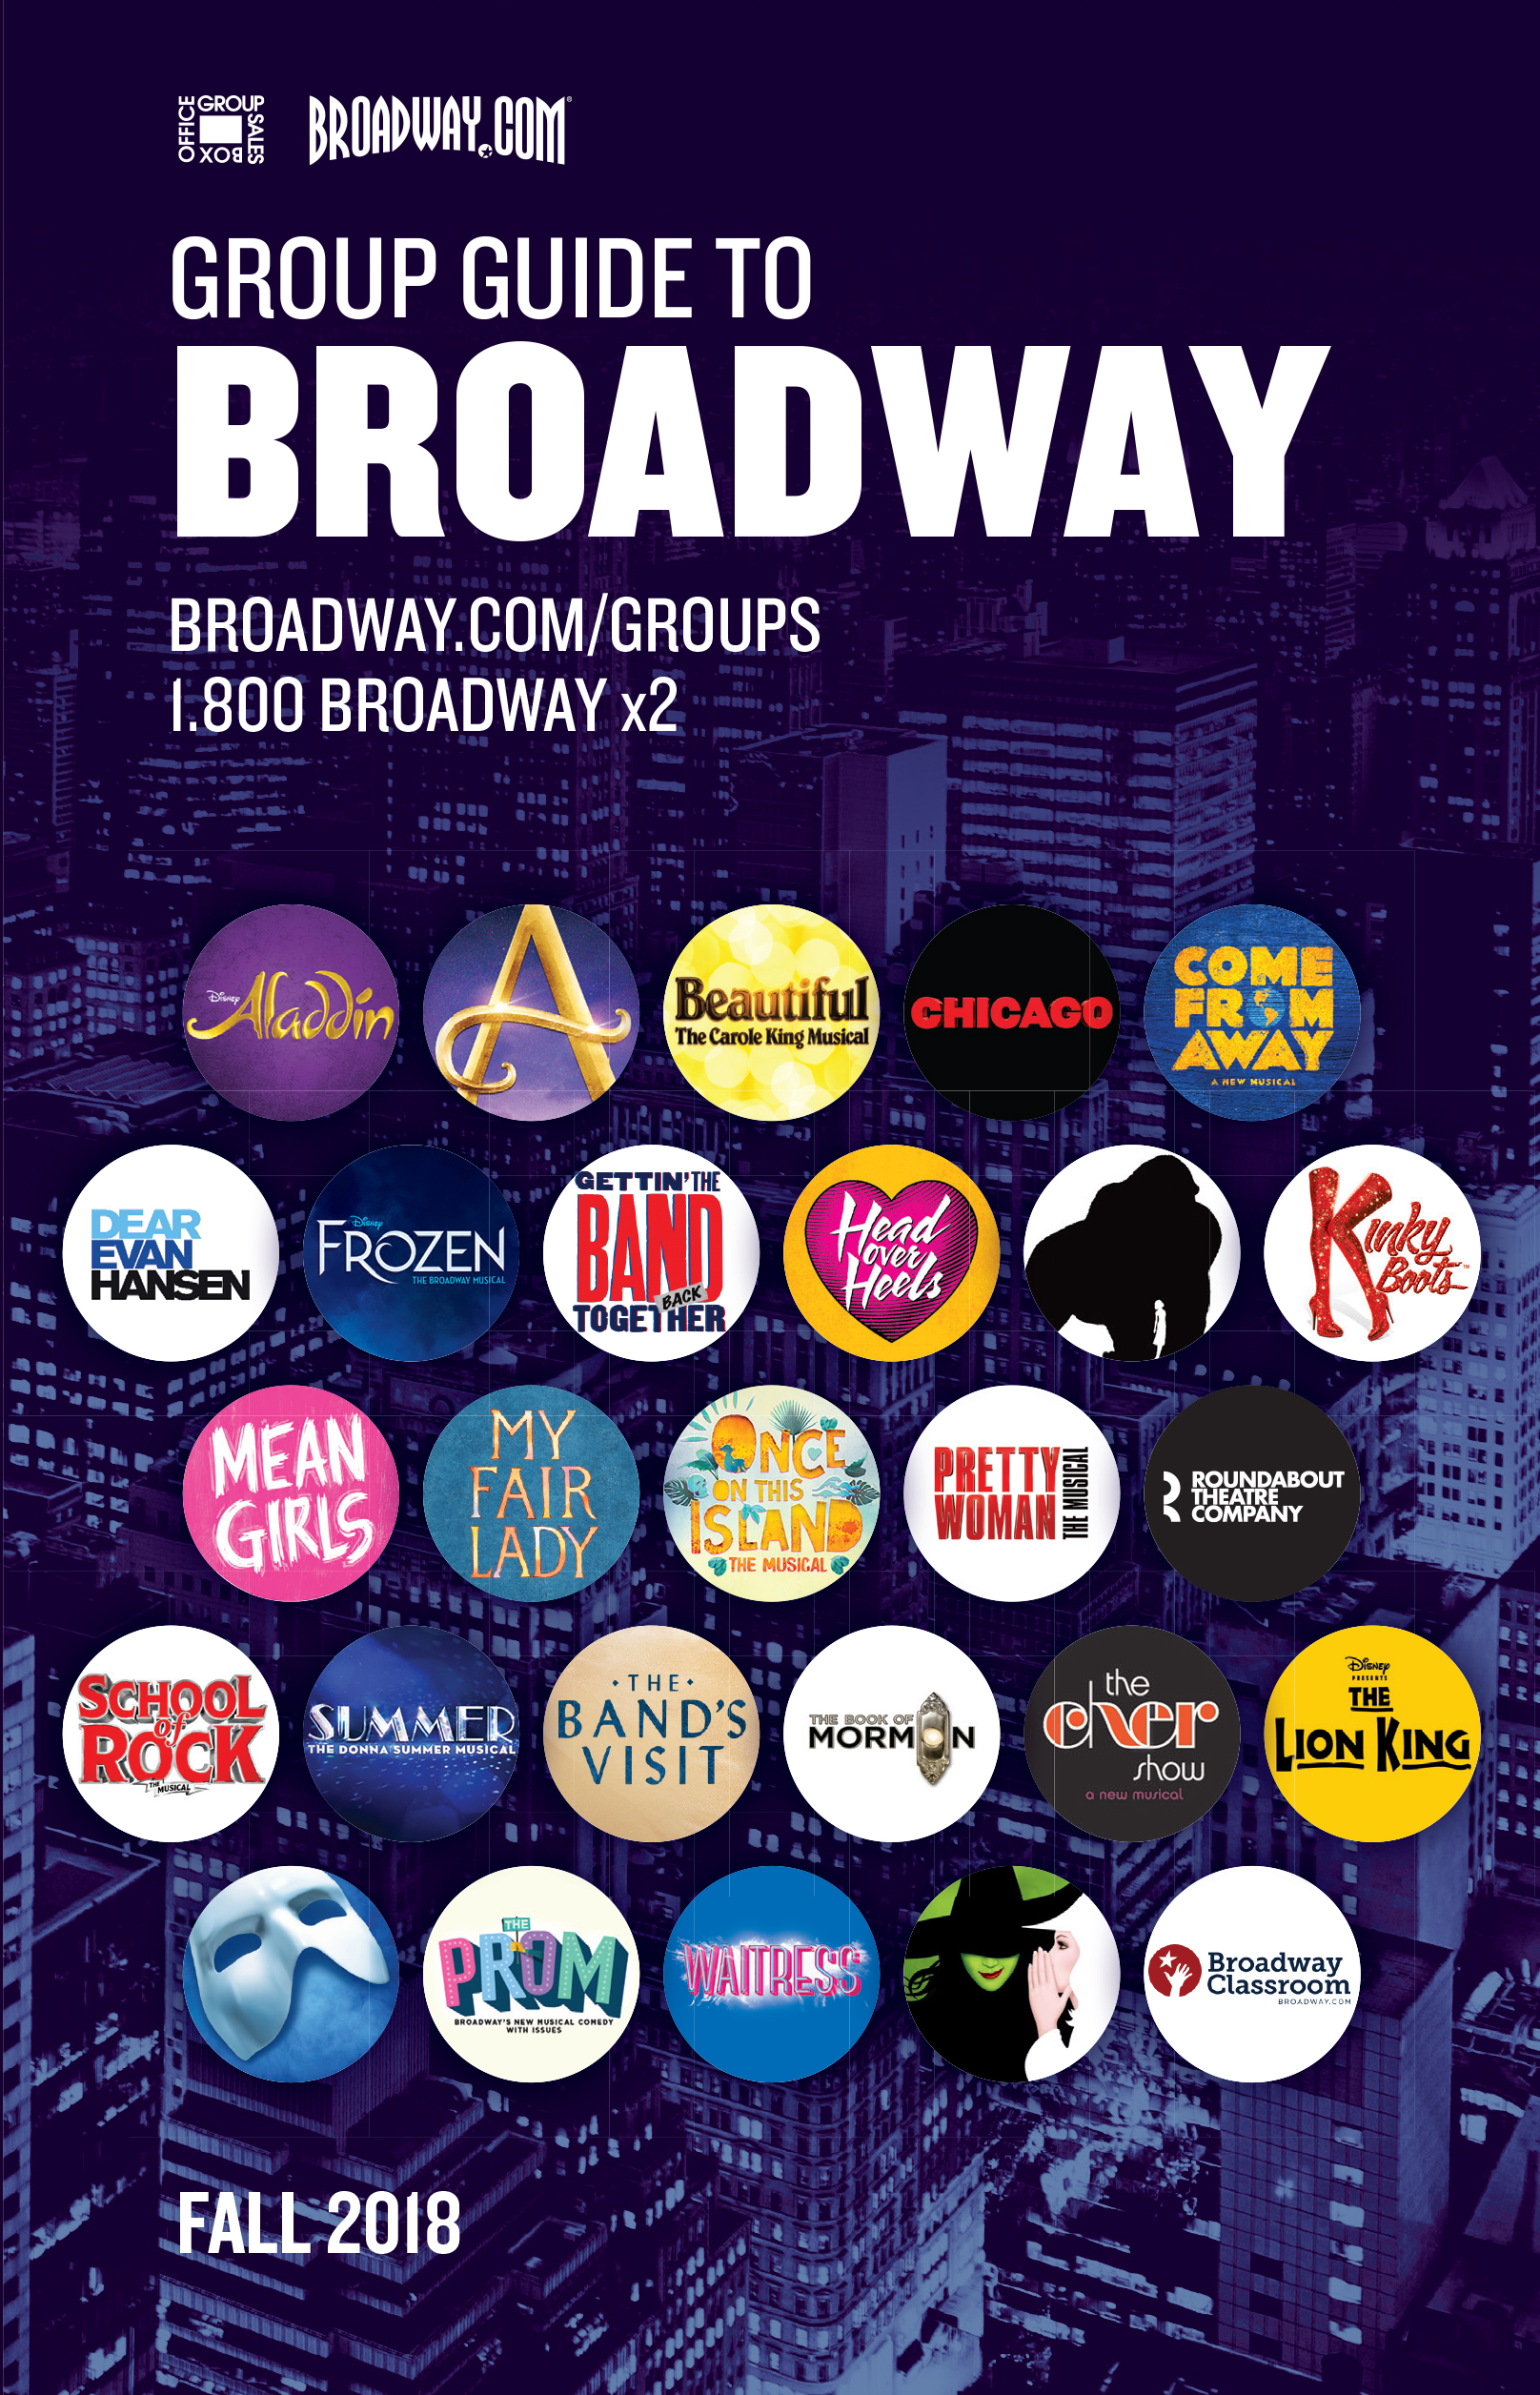 Fall 2018 Group Guide to Broadway